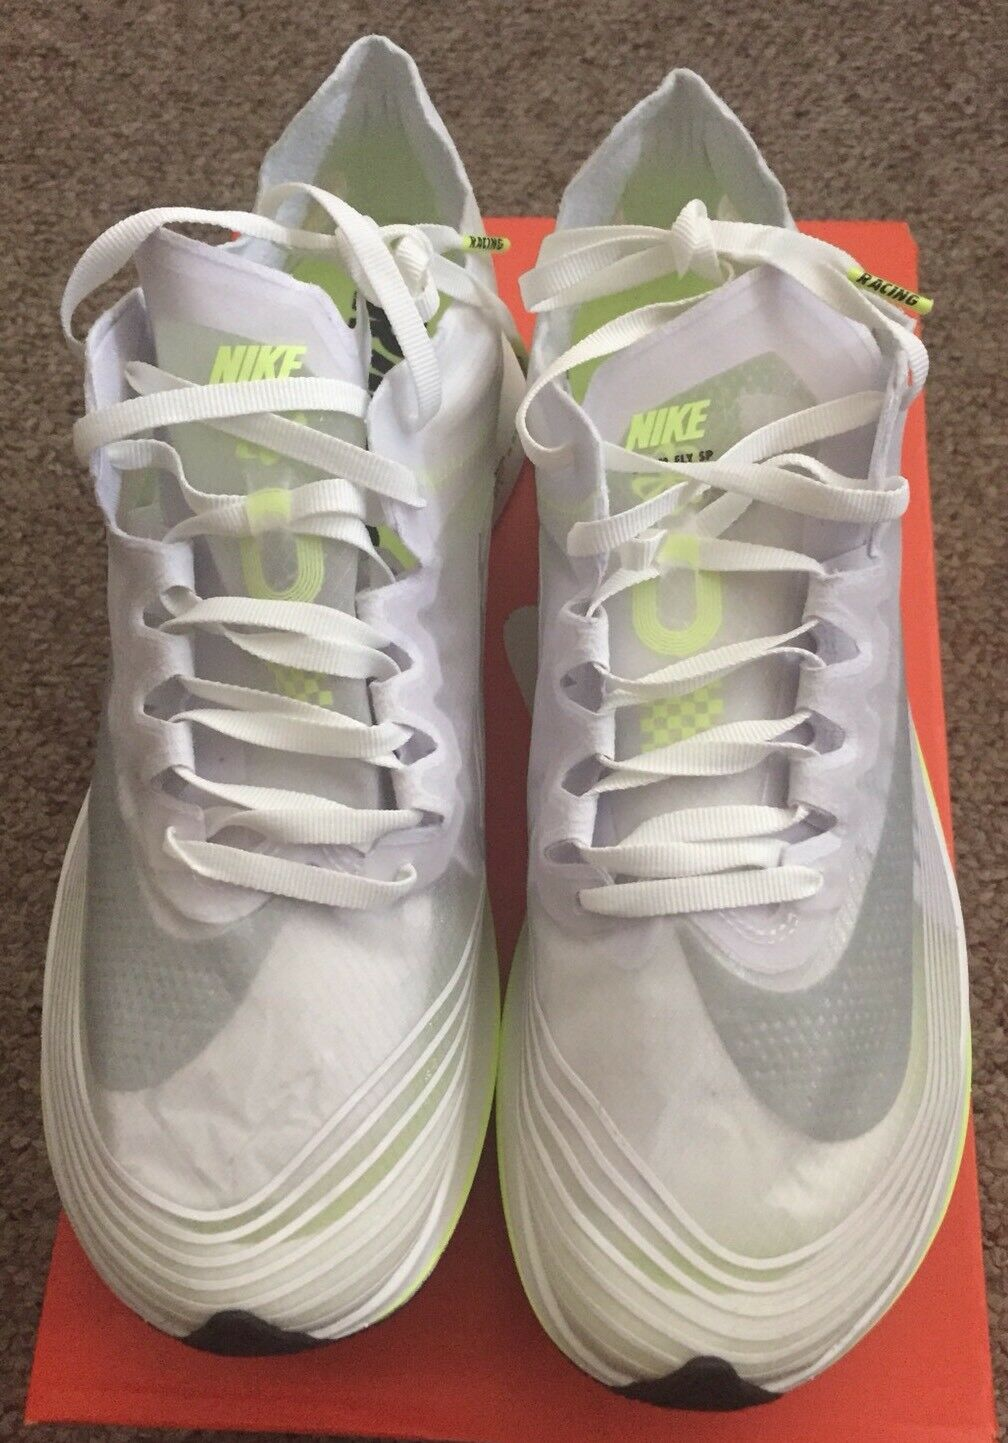 Nike Zoom Fly Sp White Volt Glow 3M Boston City Pack Mens Size 9 Not Off White